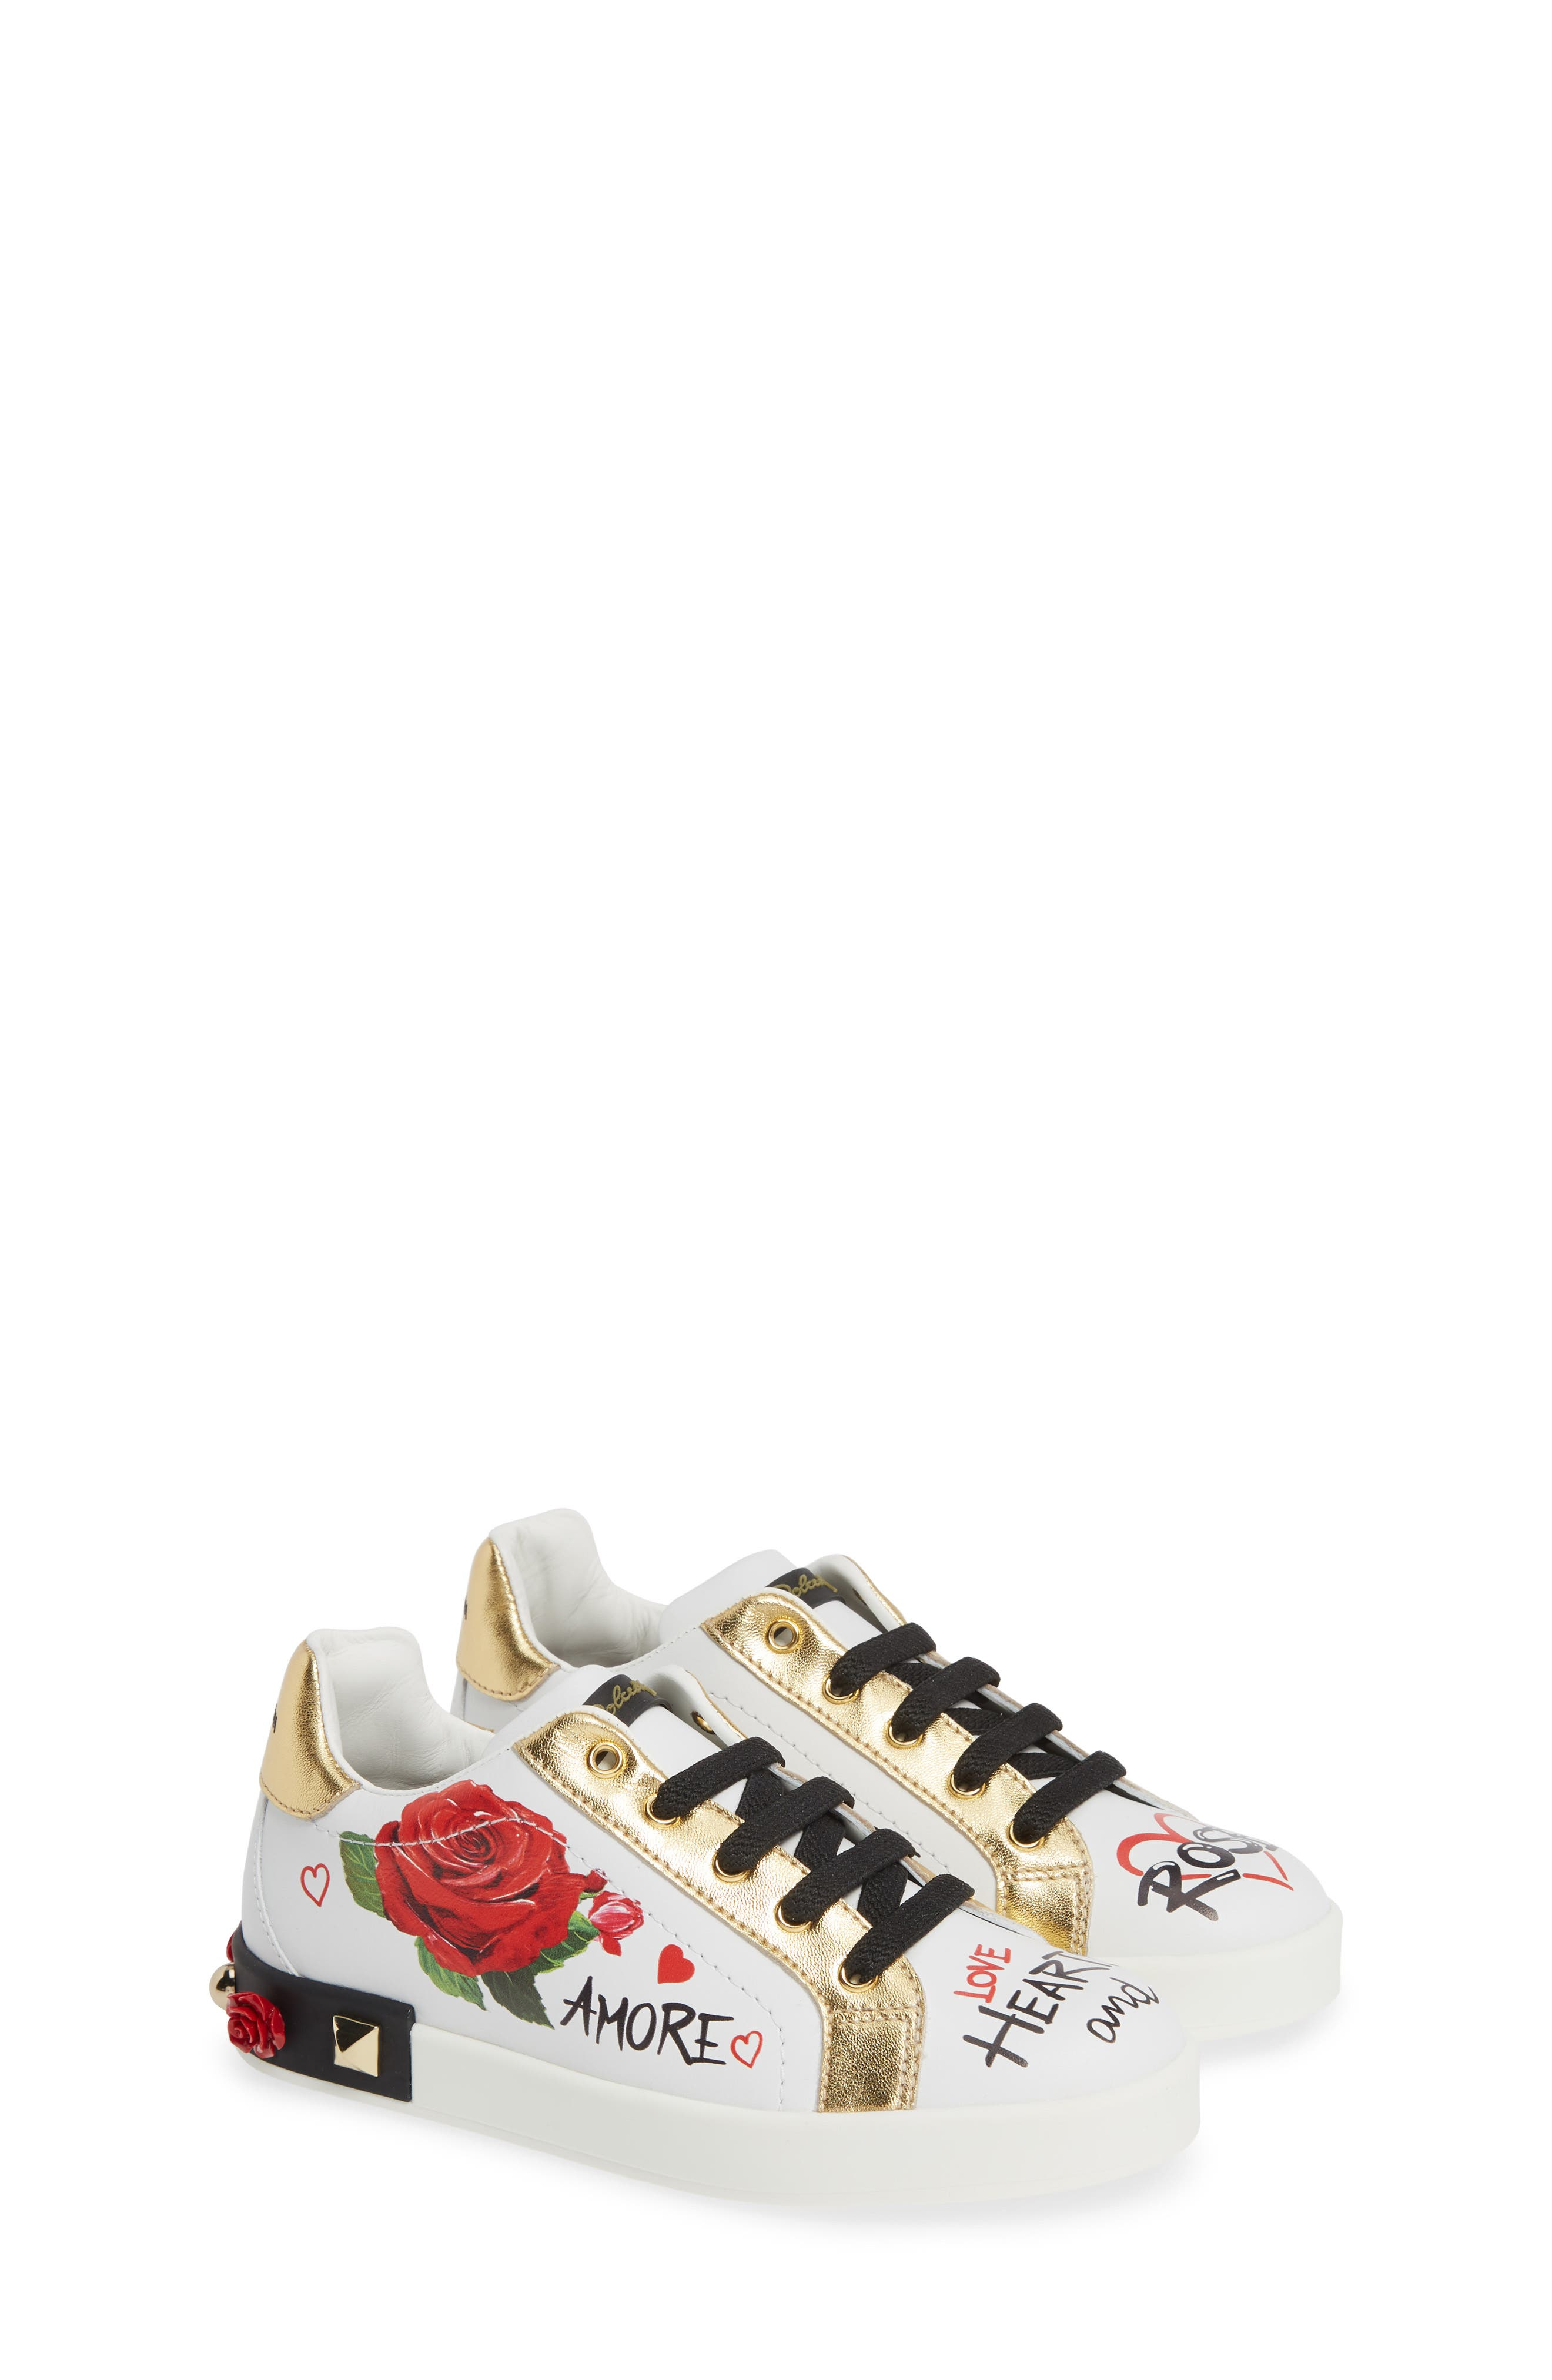 Amore Low Top Sneaker,                             Main thumbnail 1, color,                             WHITE